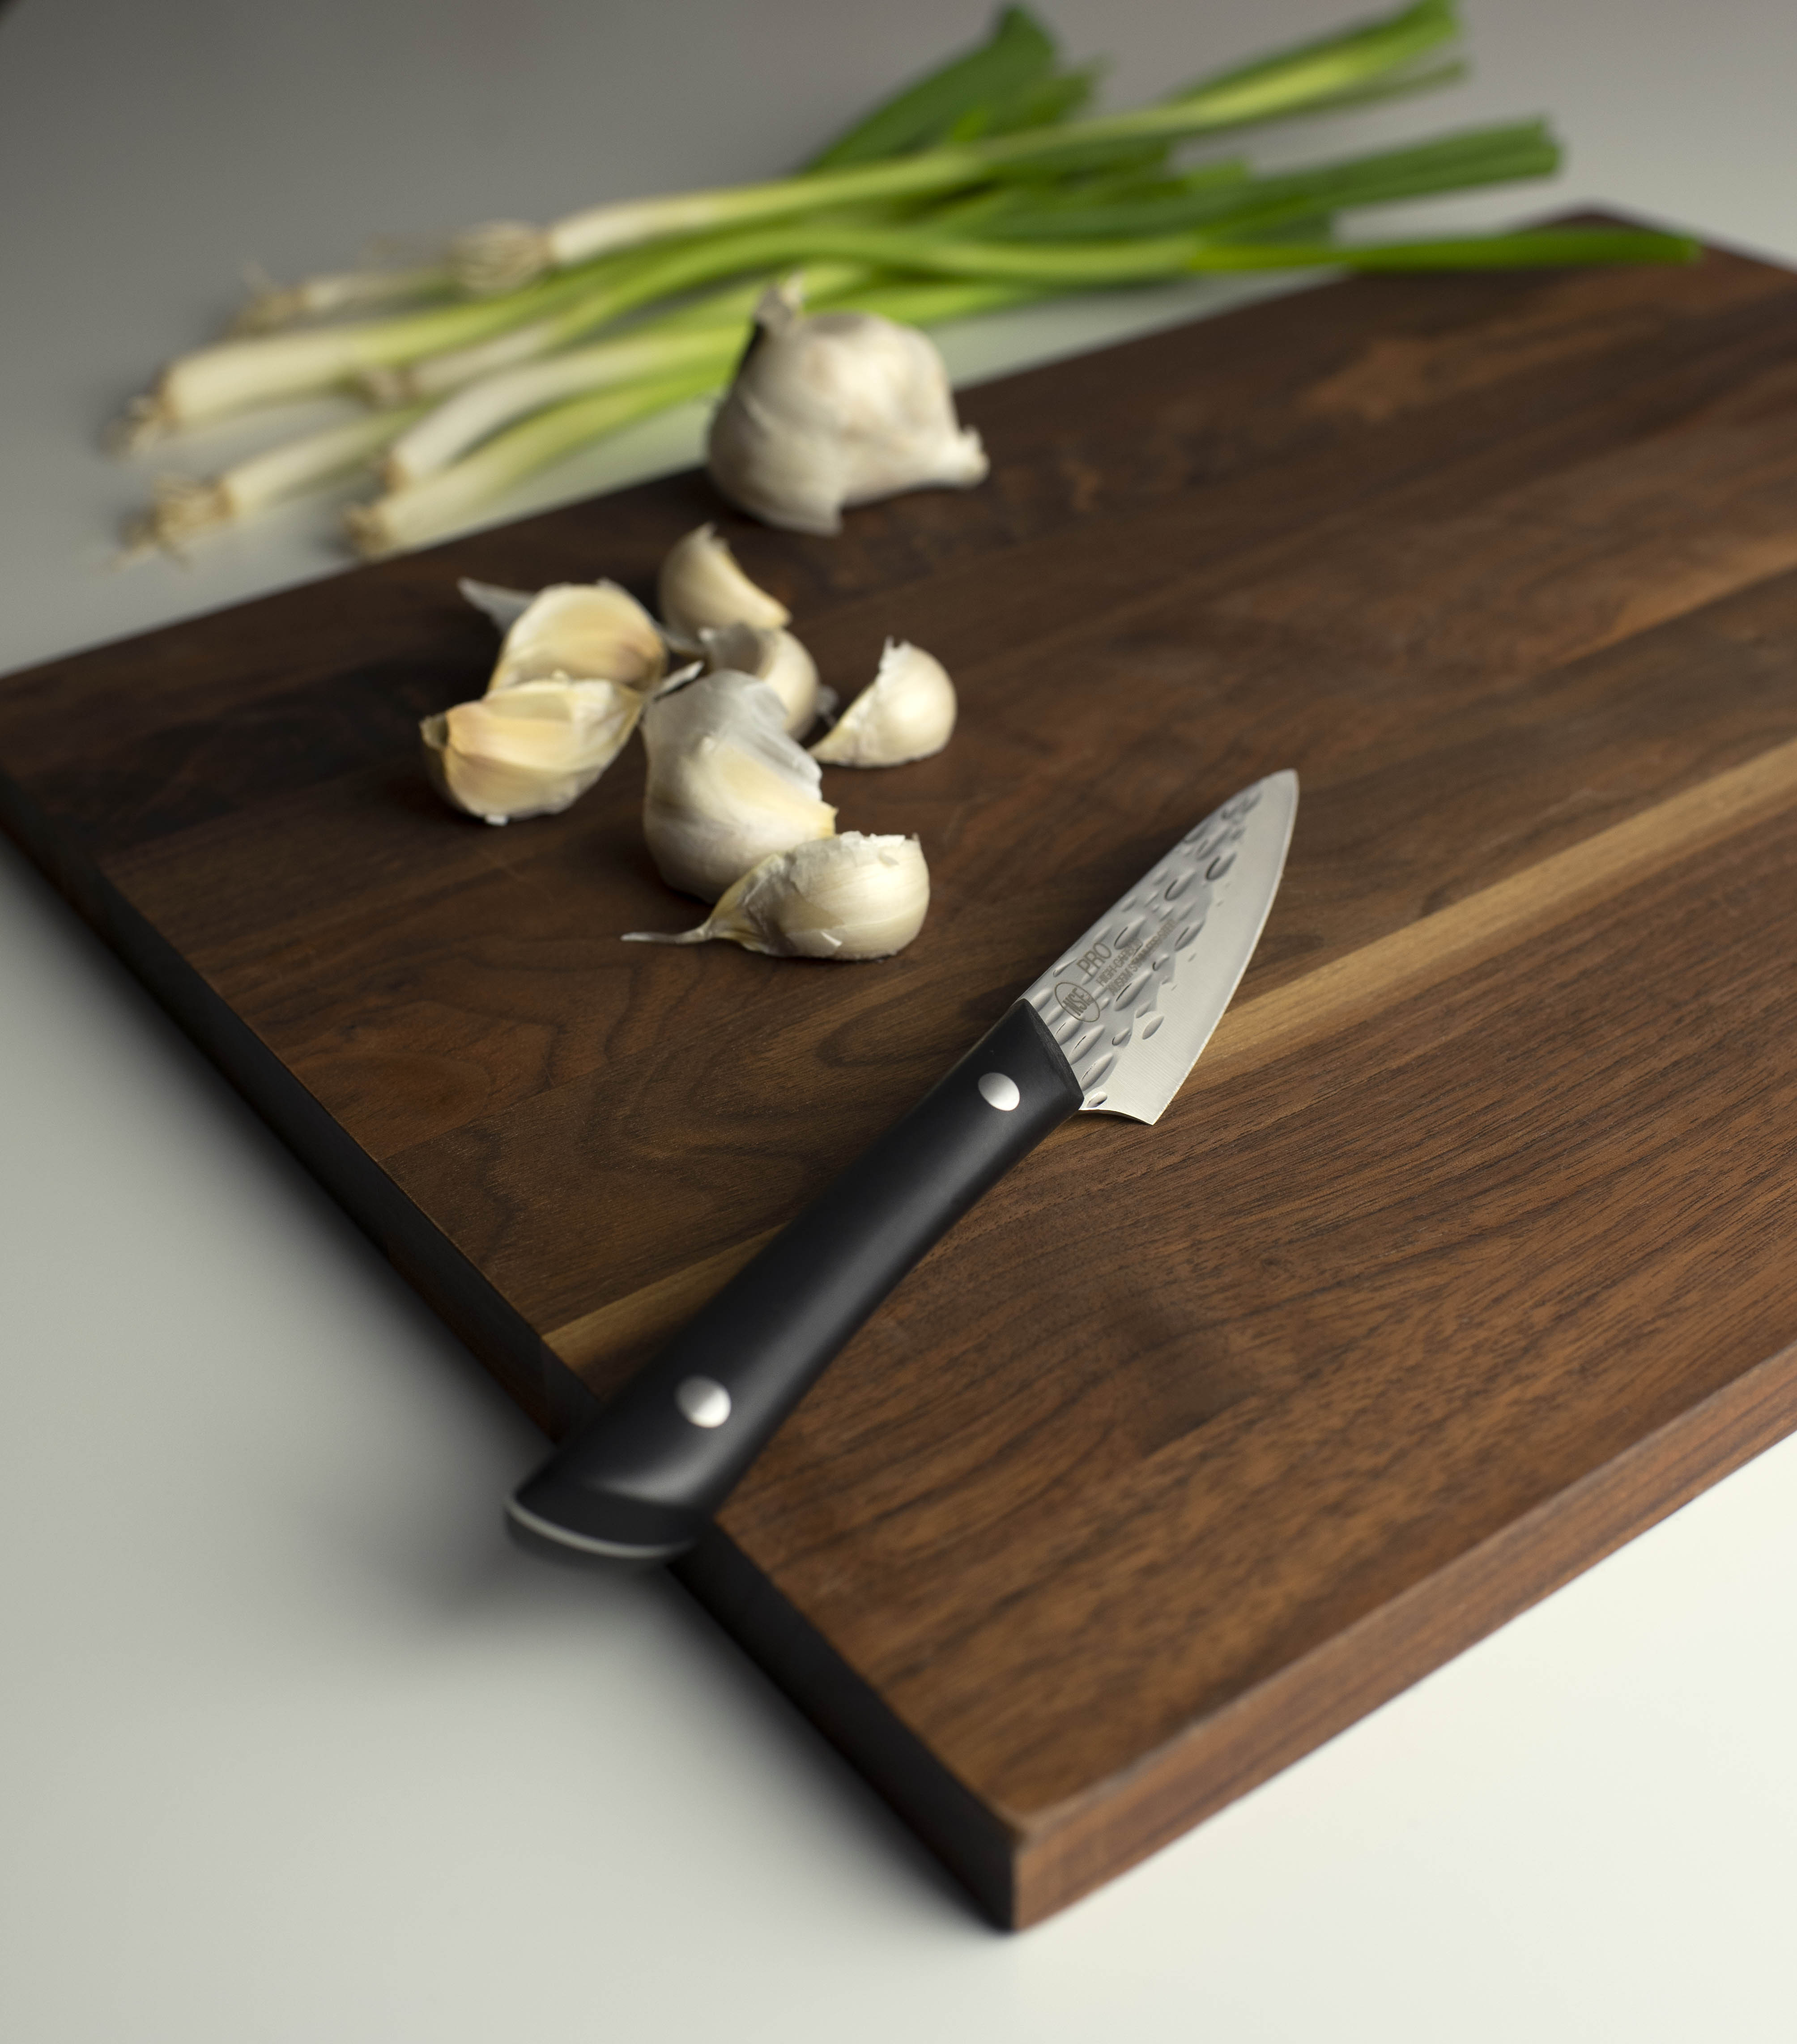 SPONSORED POST: Win: A 6-Piece Kai PRO Knife Set from the Makers of Shun Cutlery